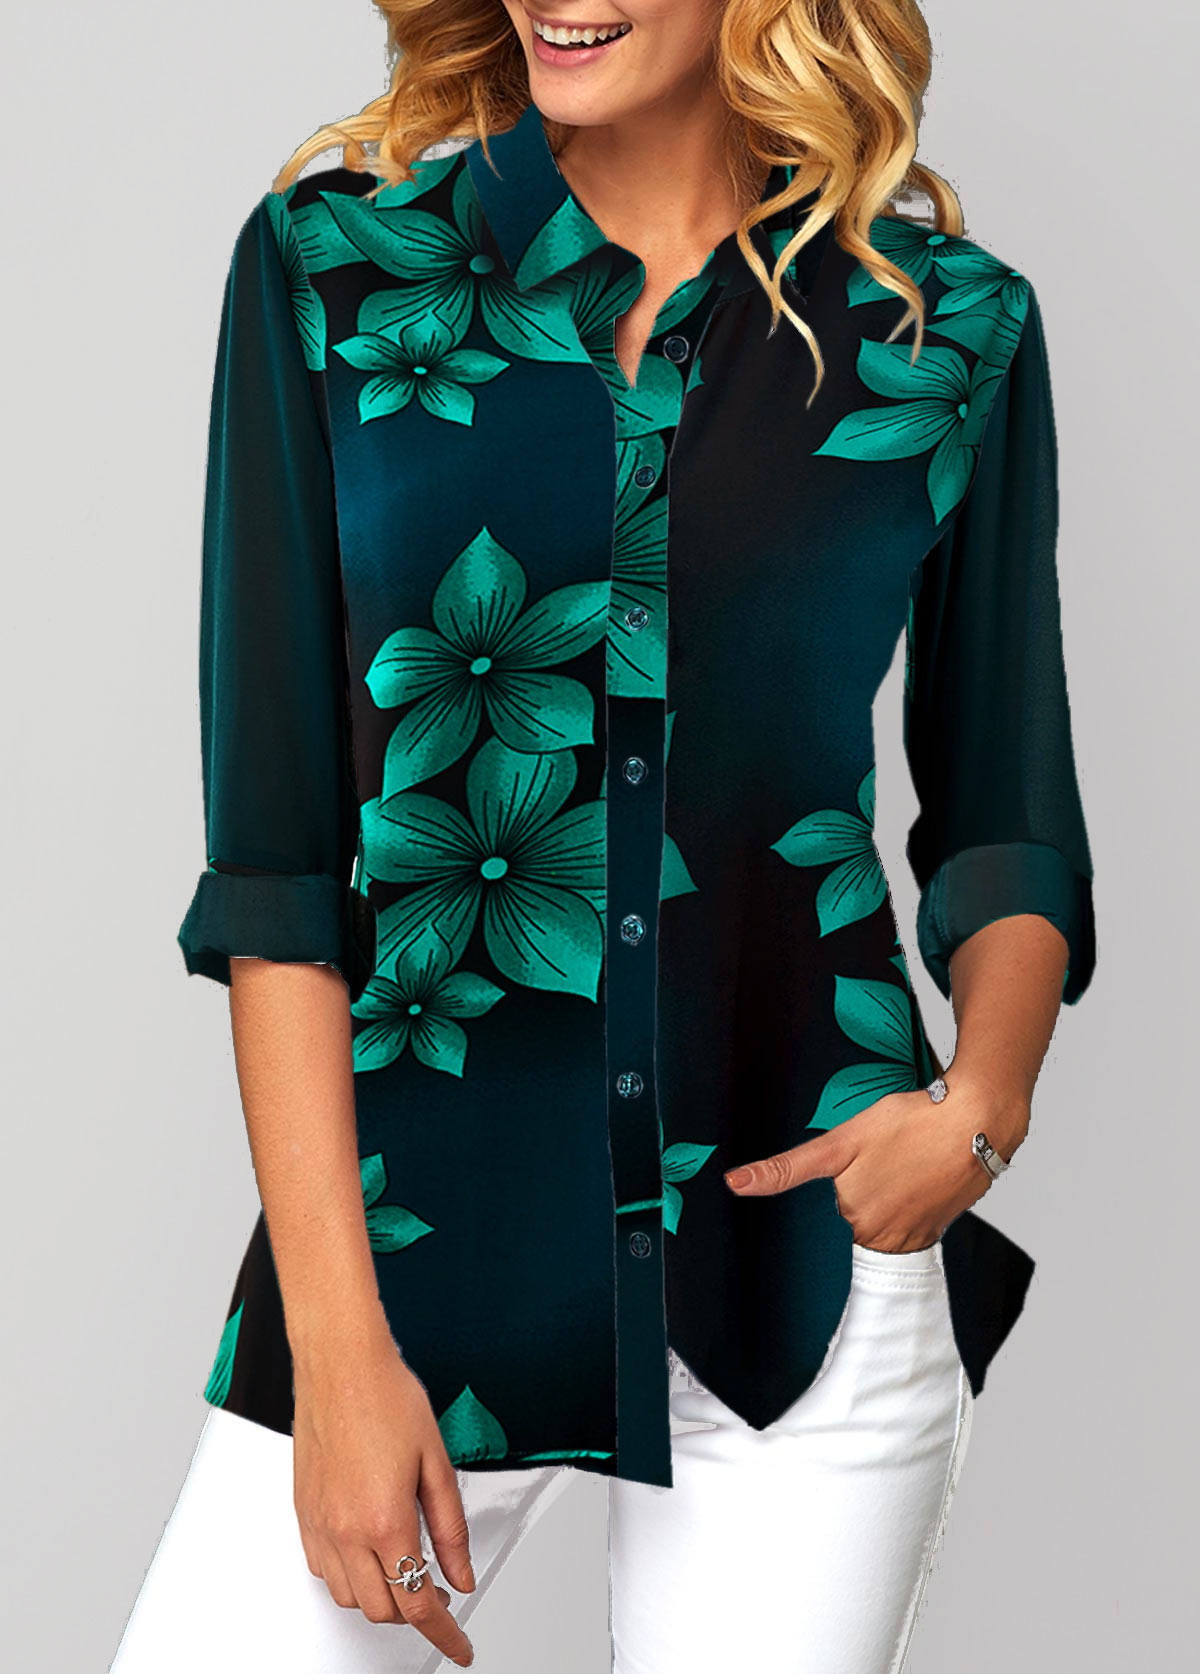 Flower Print Button Up Turndown Collar Shirt